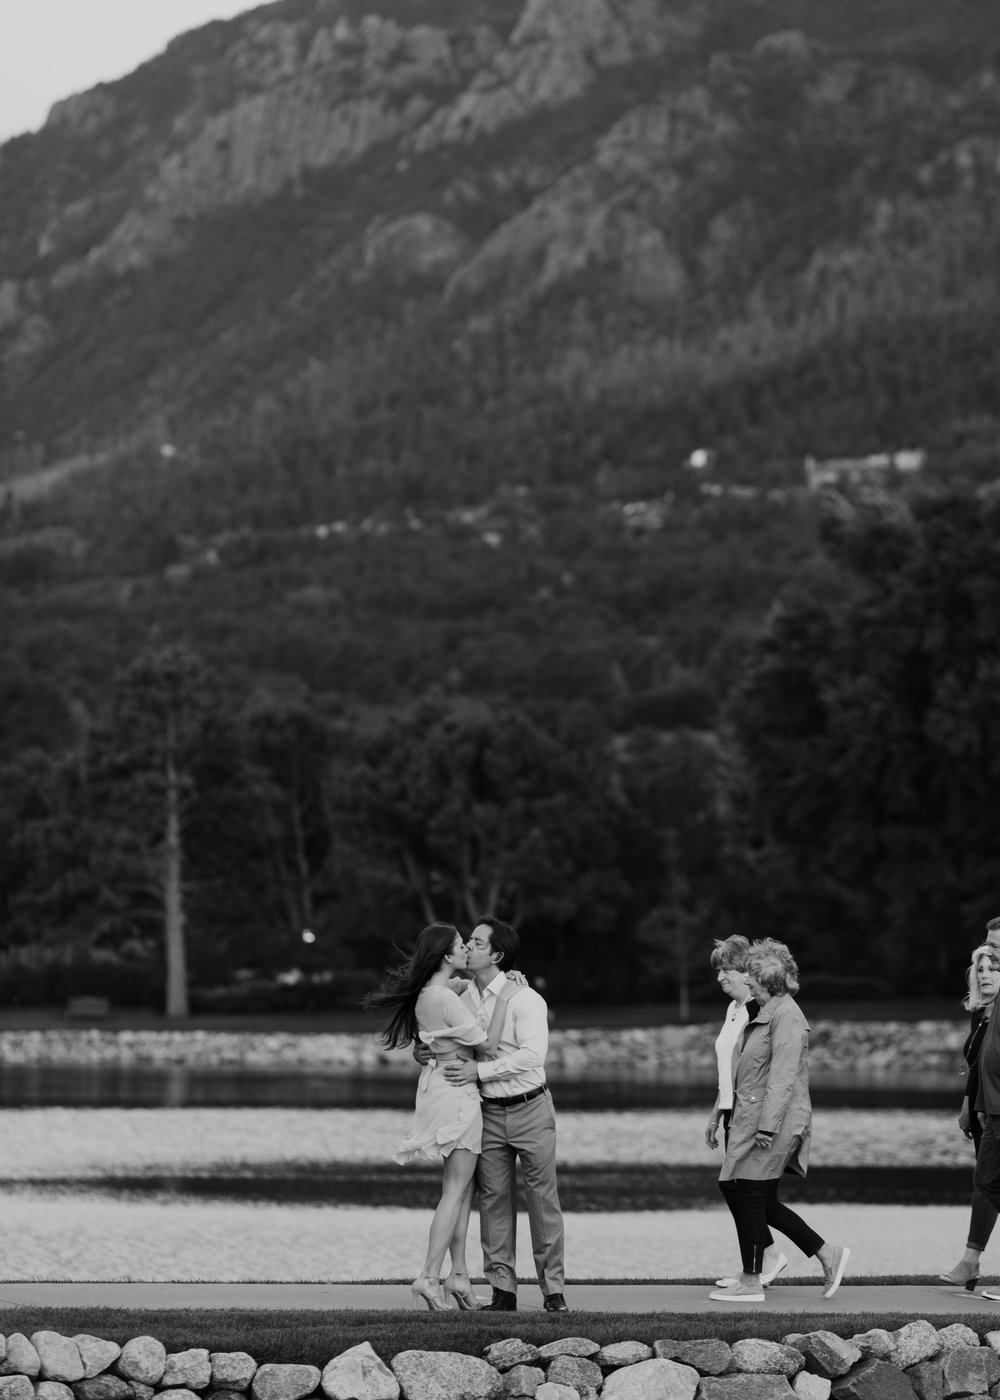 broadmoor-engagement-photography-50.jpg